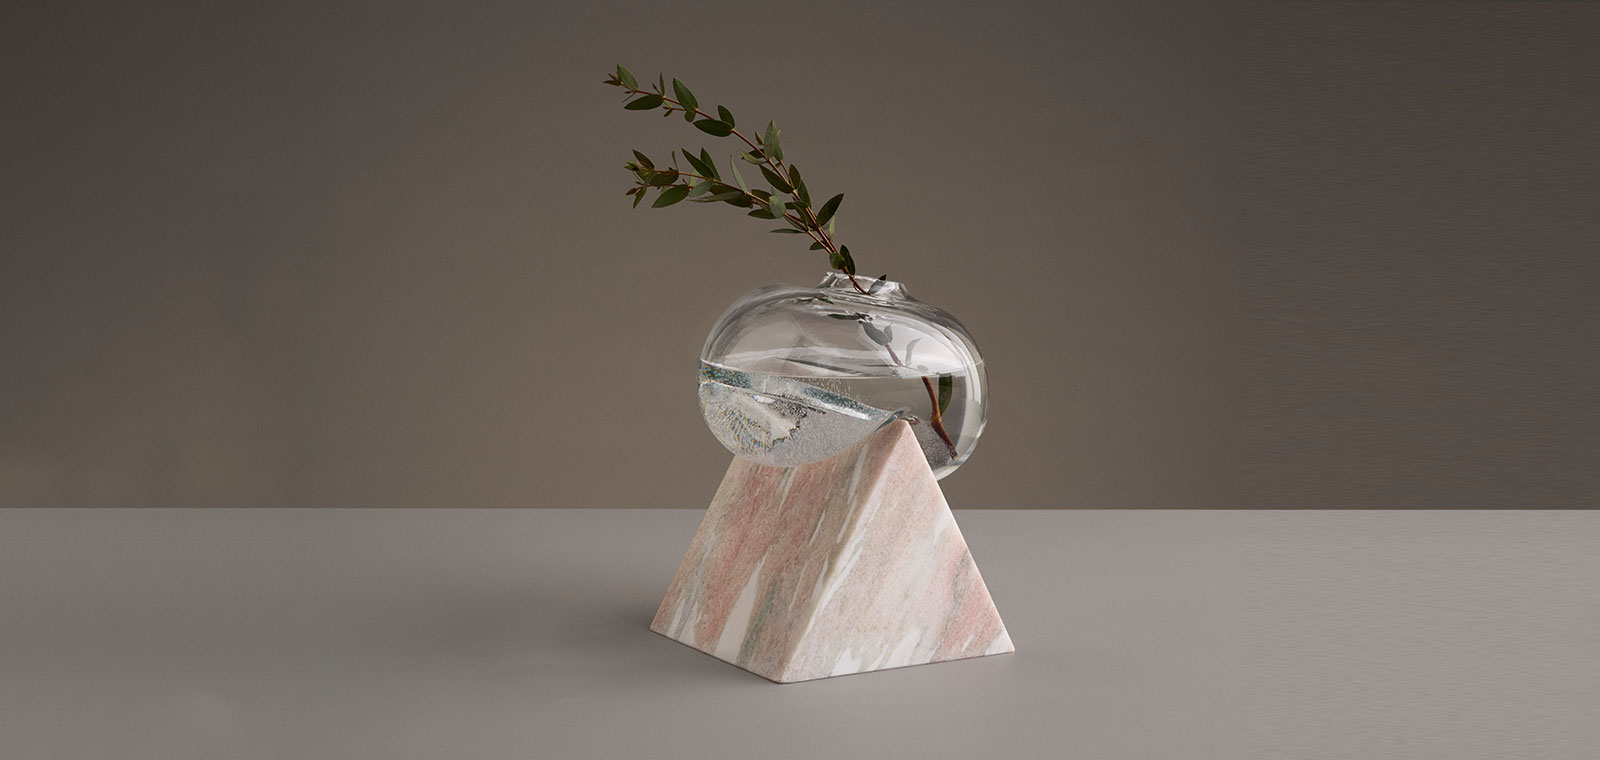 Indefinite vases by Studio E.O beautiful sculptural vases